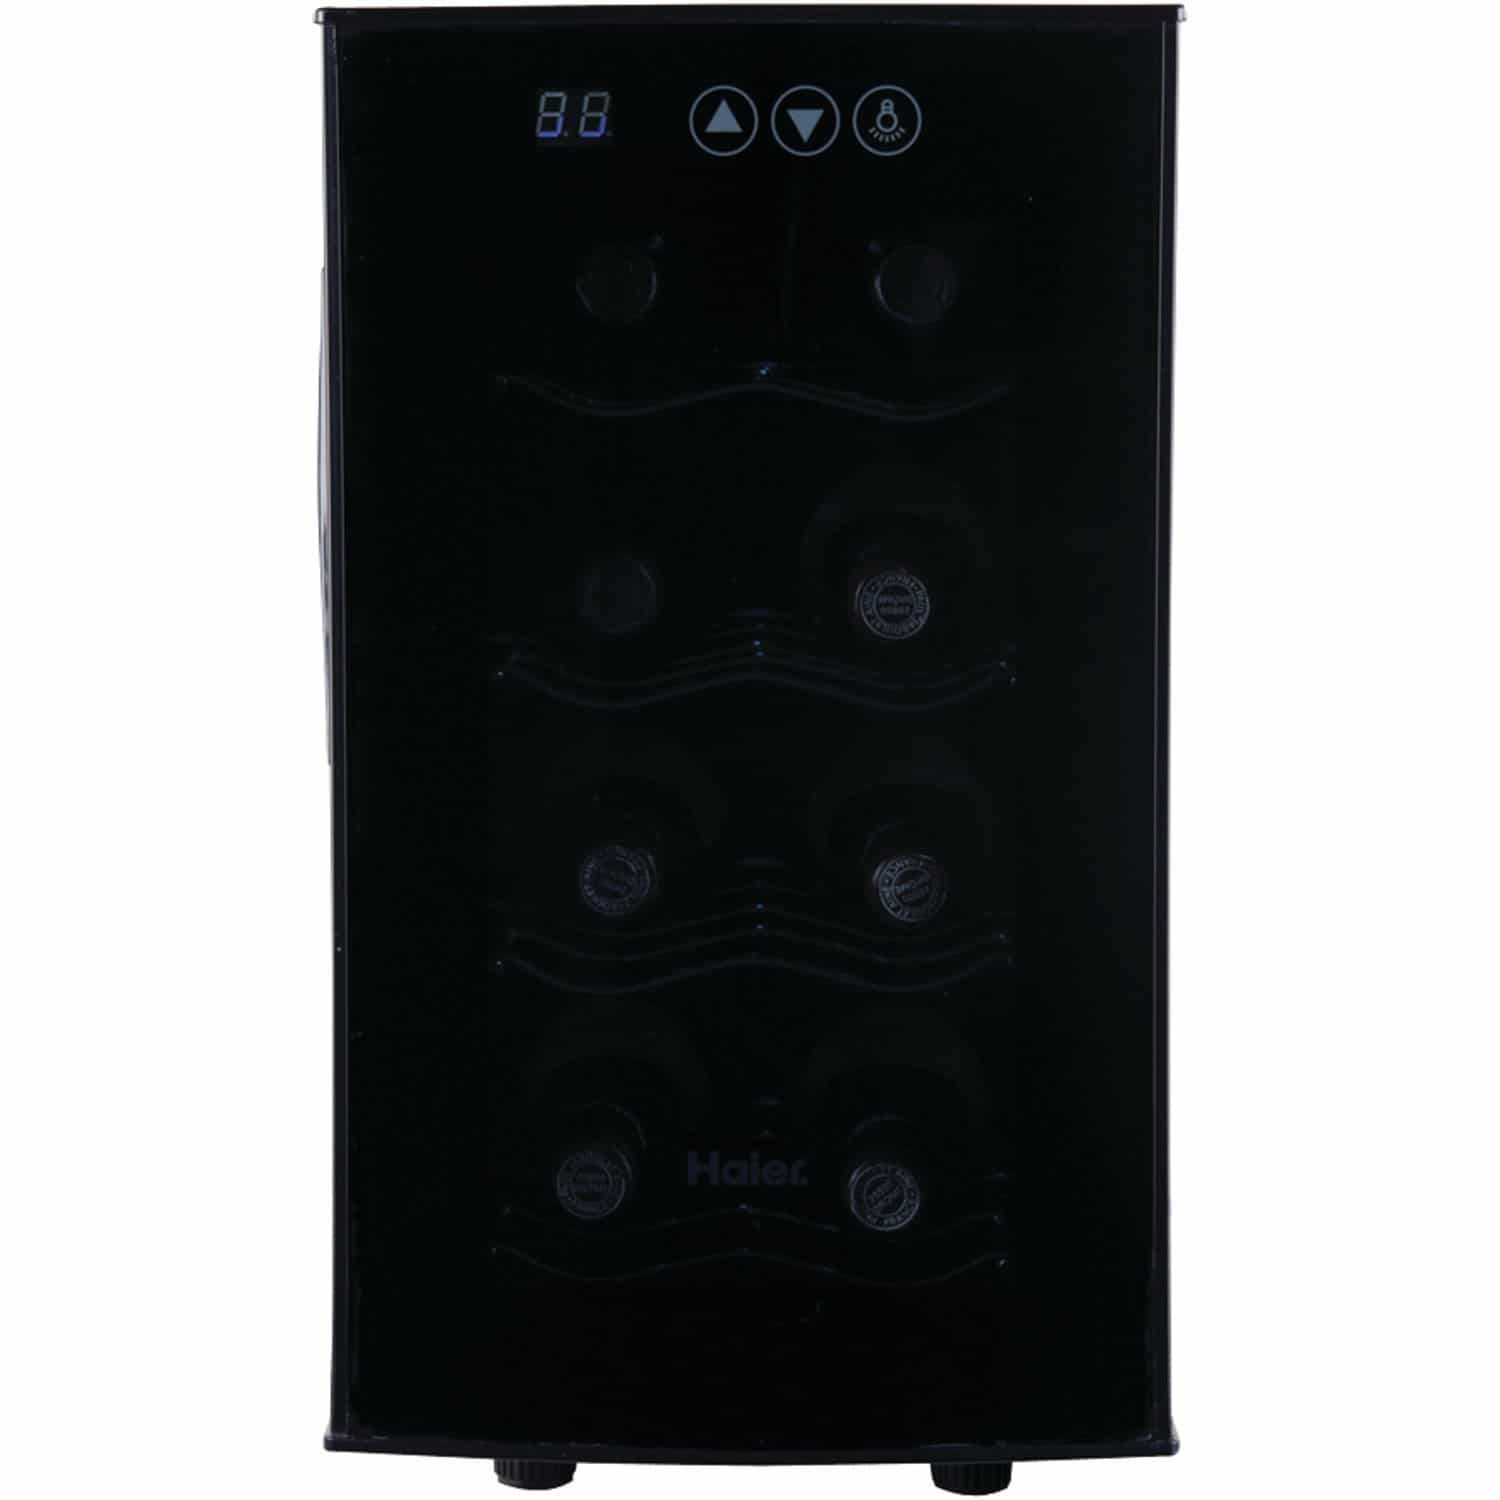 Haier 8 Bottle Wine Cooler Reviews